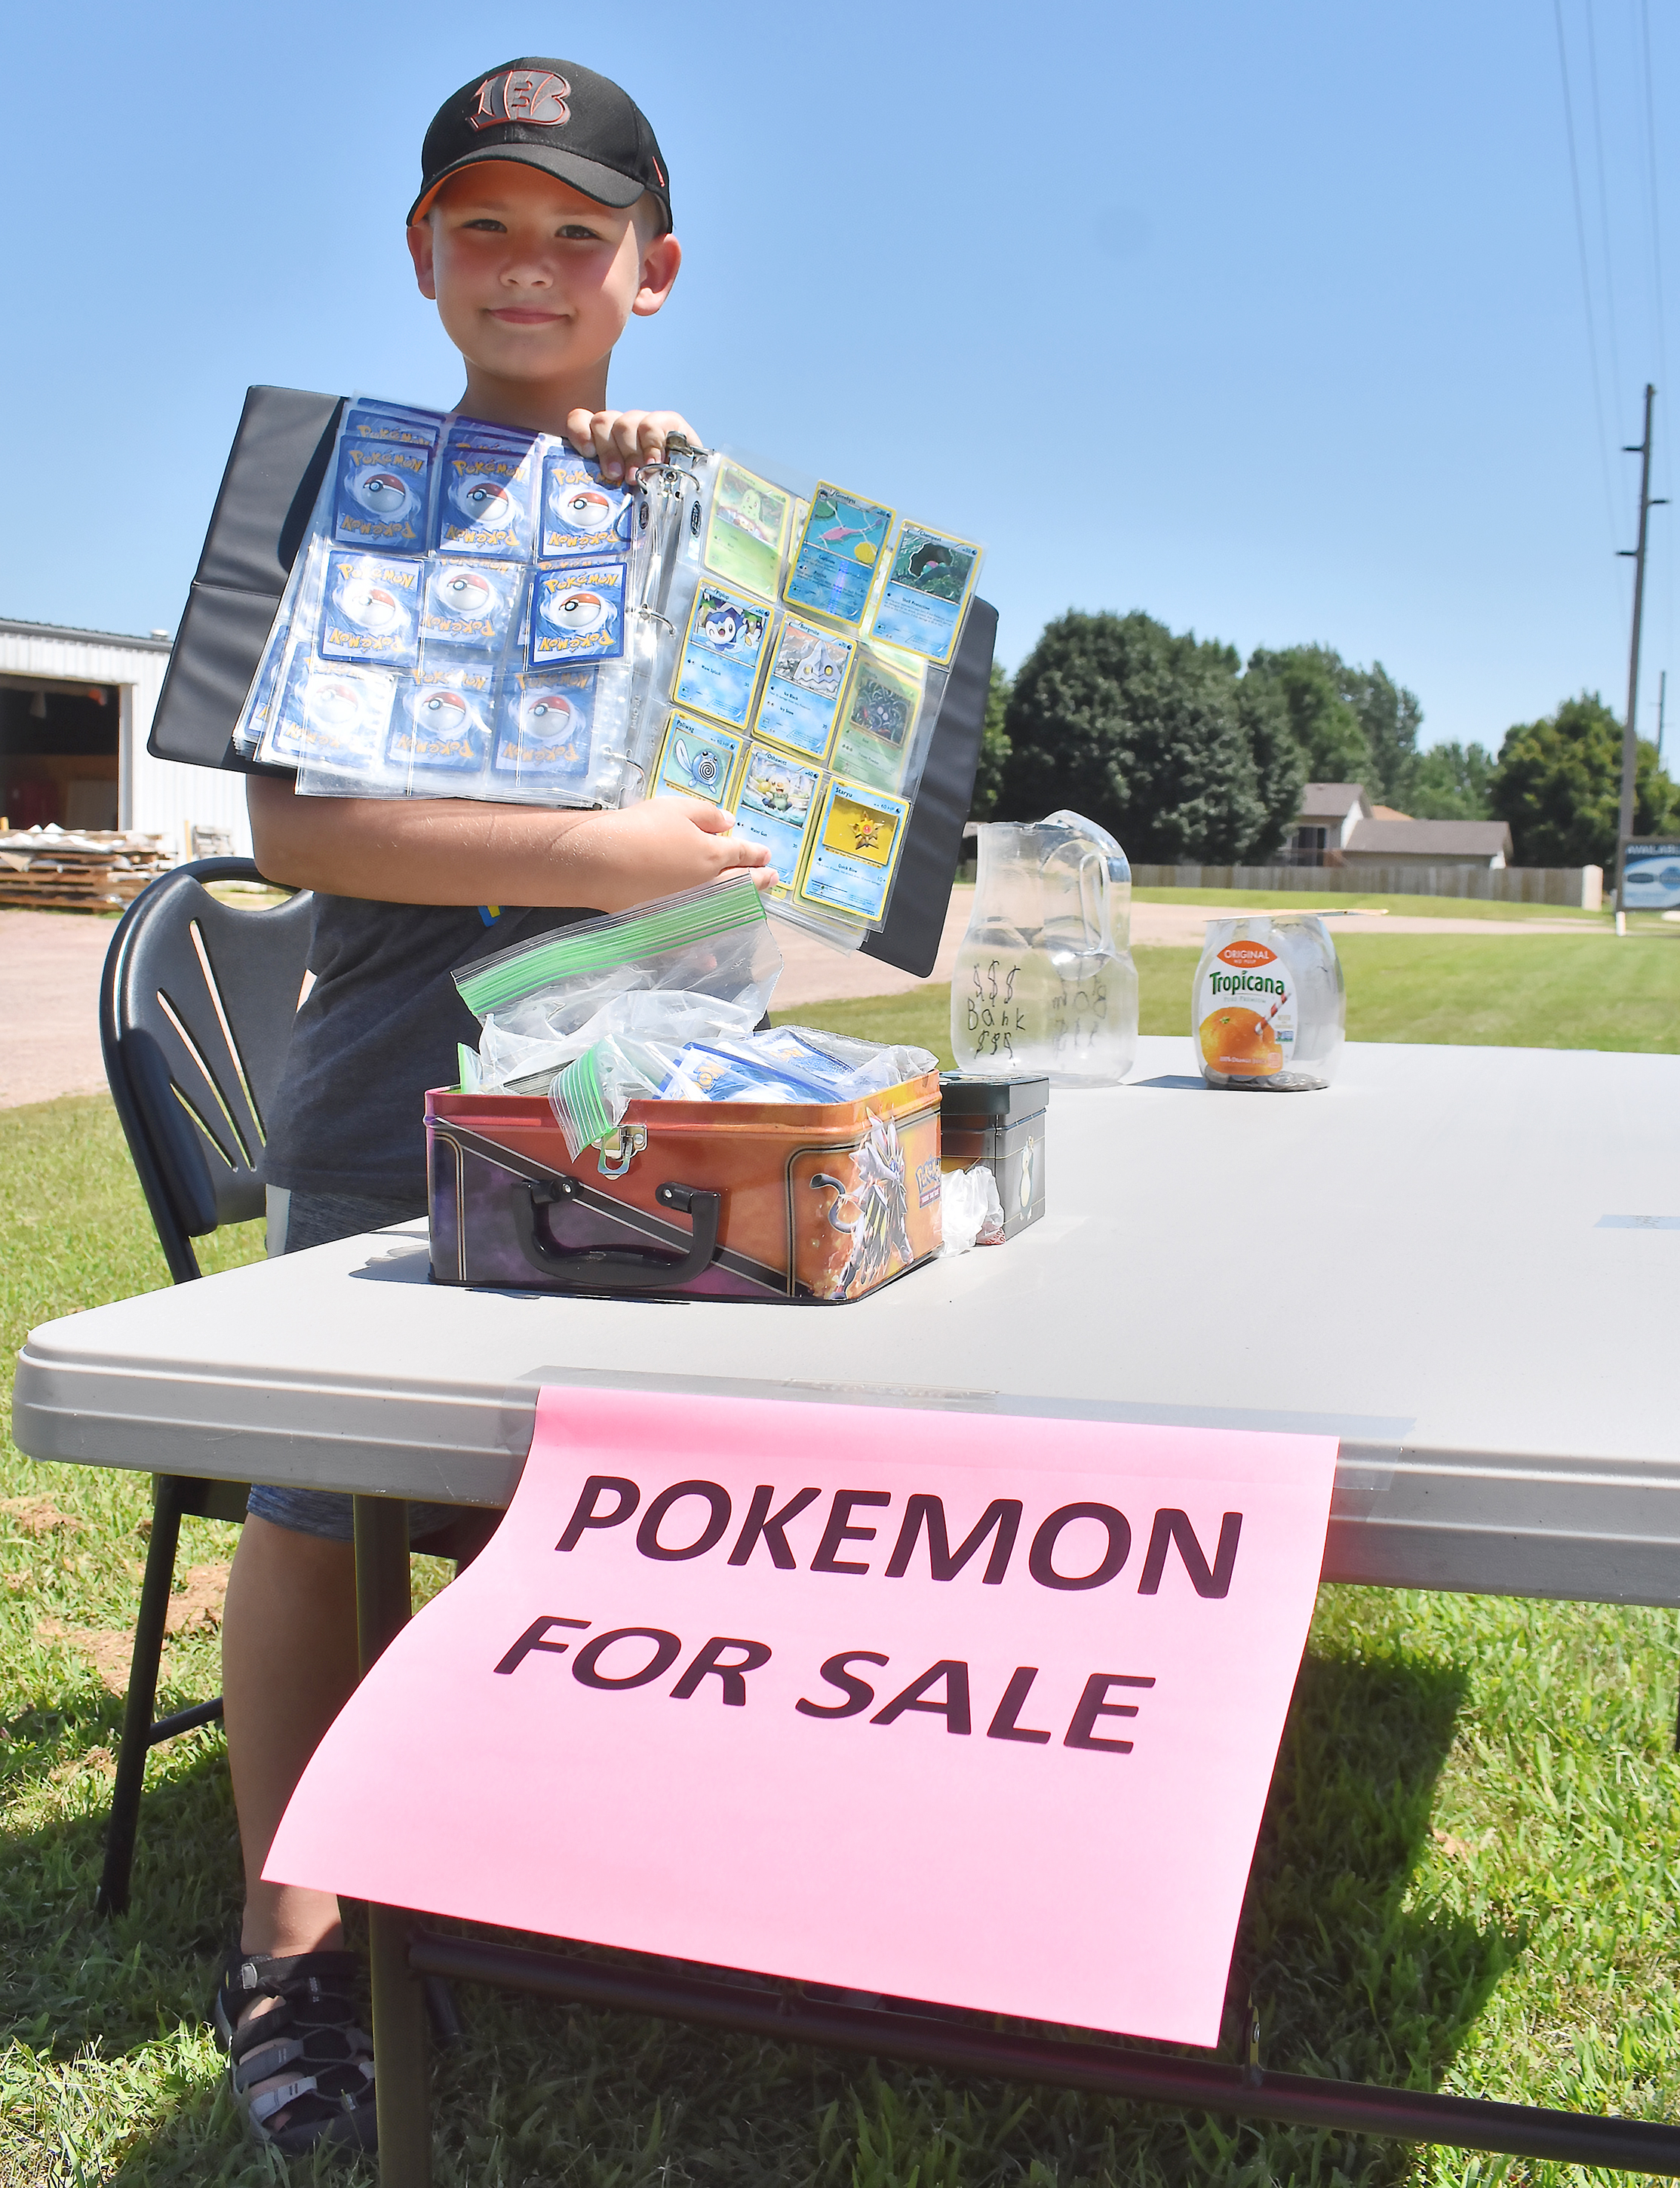 "<span class=""s1"">Pokemon enthusiast Lukas Rodne sells trading cards on Aspen Boulevard Friday afternoon. The 9-year-old entrepreneur, who has, ""like a thousand cards, maybe,"" is selling some of his current collection ""basically, so I can buy more rare cards."" His mom said she was proud of him for bearing the heat. ""He's been asking for weeks,"" she added. ""I think it's super cute."" Within his first hour in business, Lukas had two popsicles to stay cool.<span class=""Apple-converted-space""> <strong>Jamie Hult/BV Journal</strong></span></span>*/"